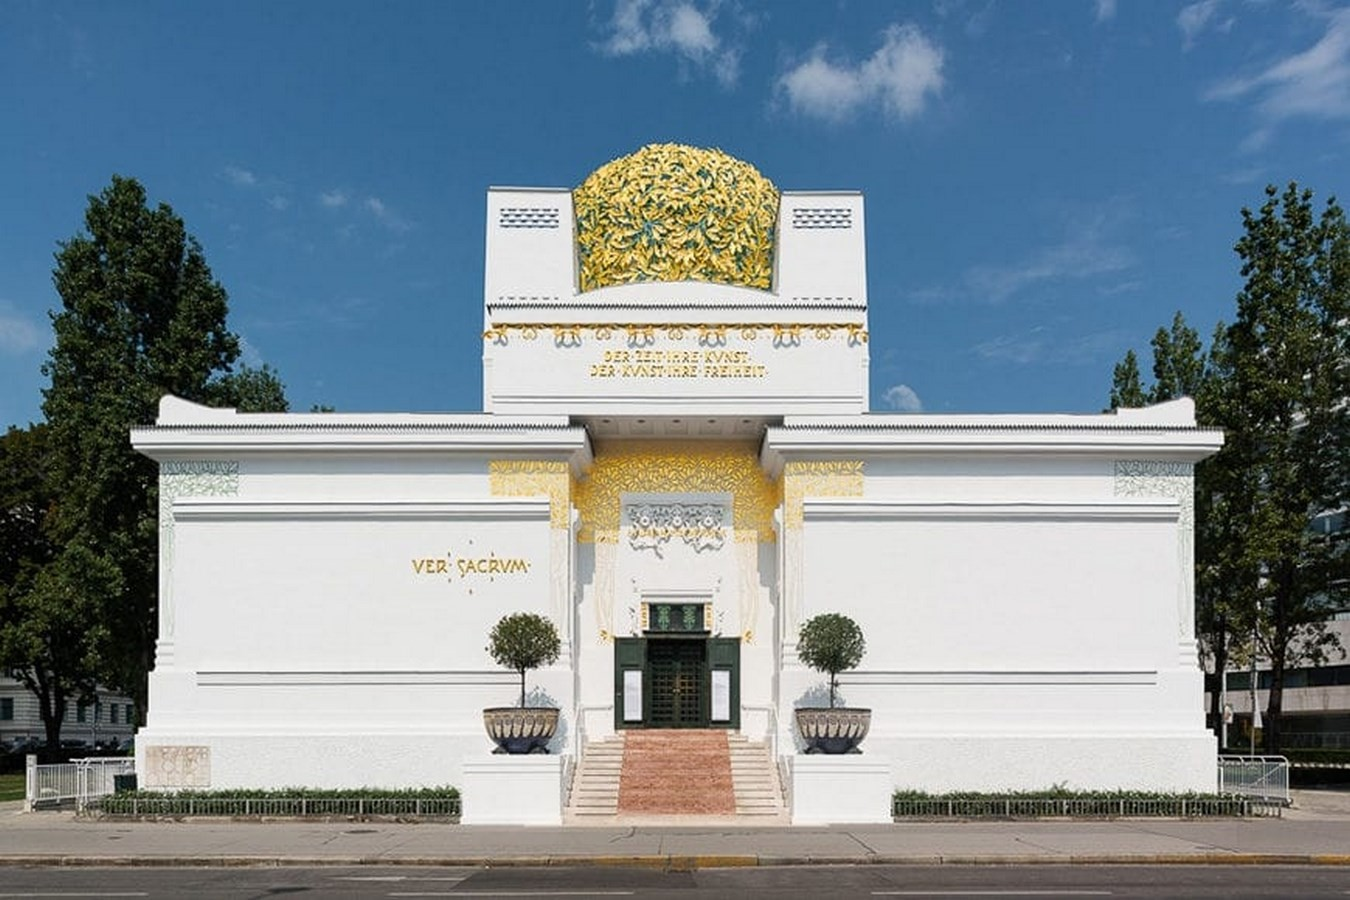 15 Examples of Art Nouveau in Architecture - Secession Building, Vienna